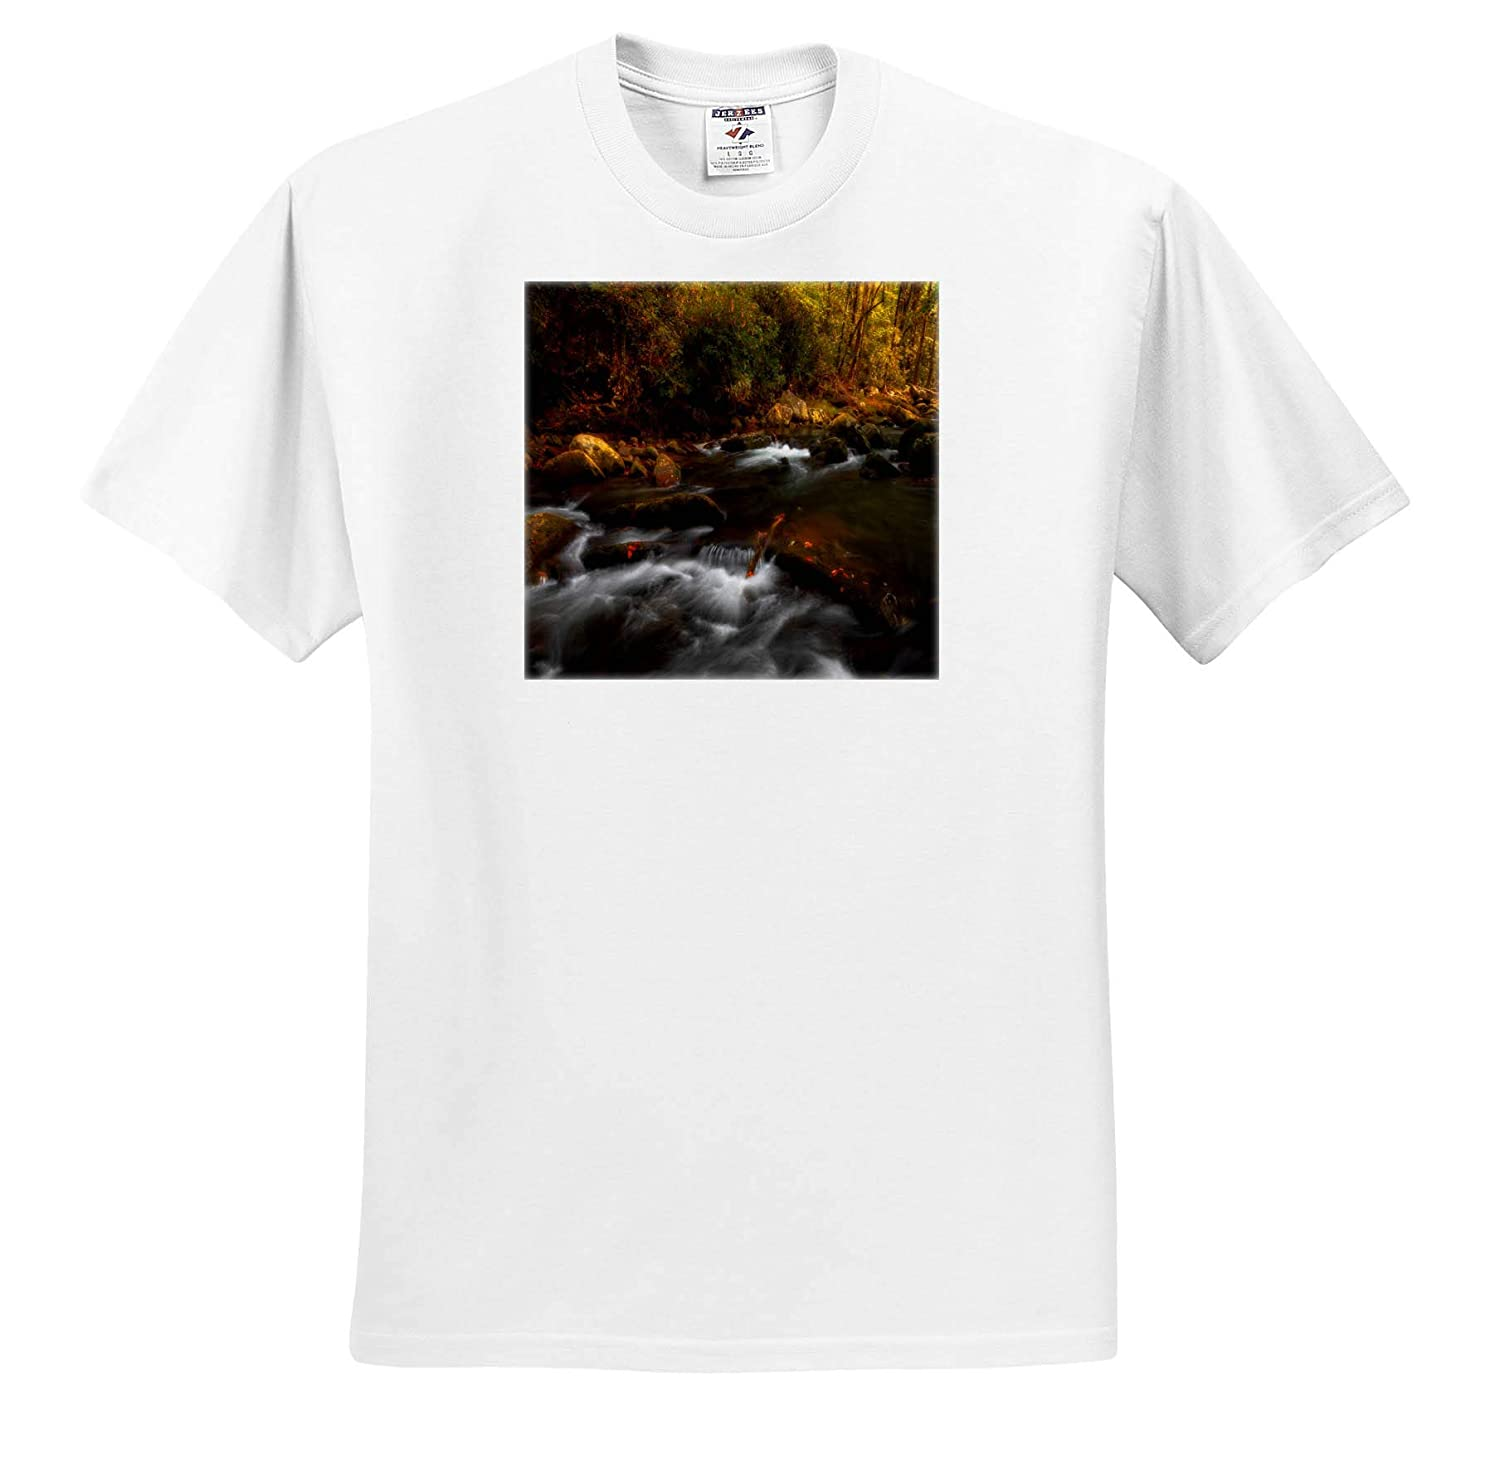 Mountain River Flowing Through Forest in Autumn ts/_309081 3dRose Mike Swindle Photography Adult T-Shirt XL Landscapes